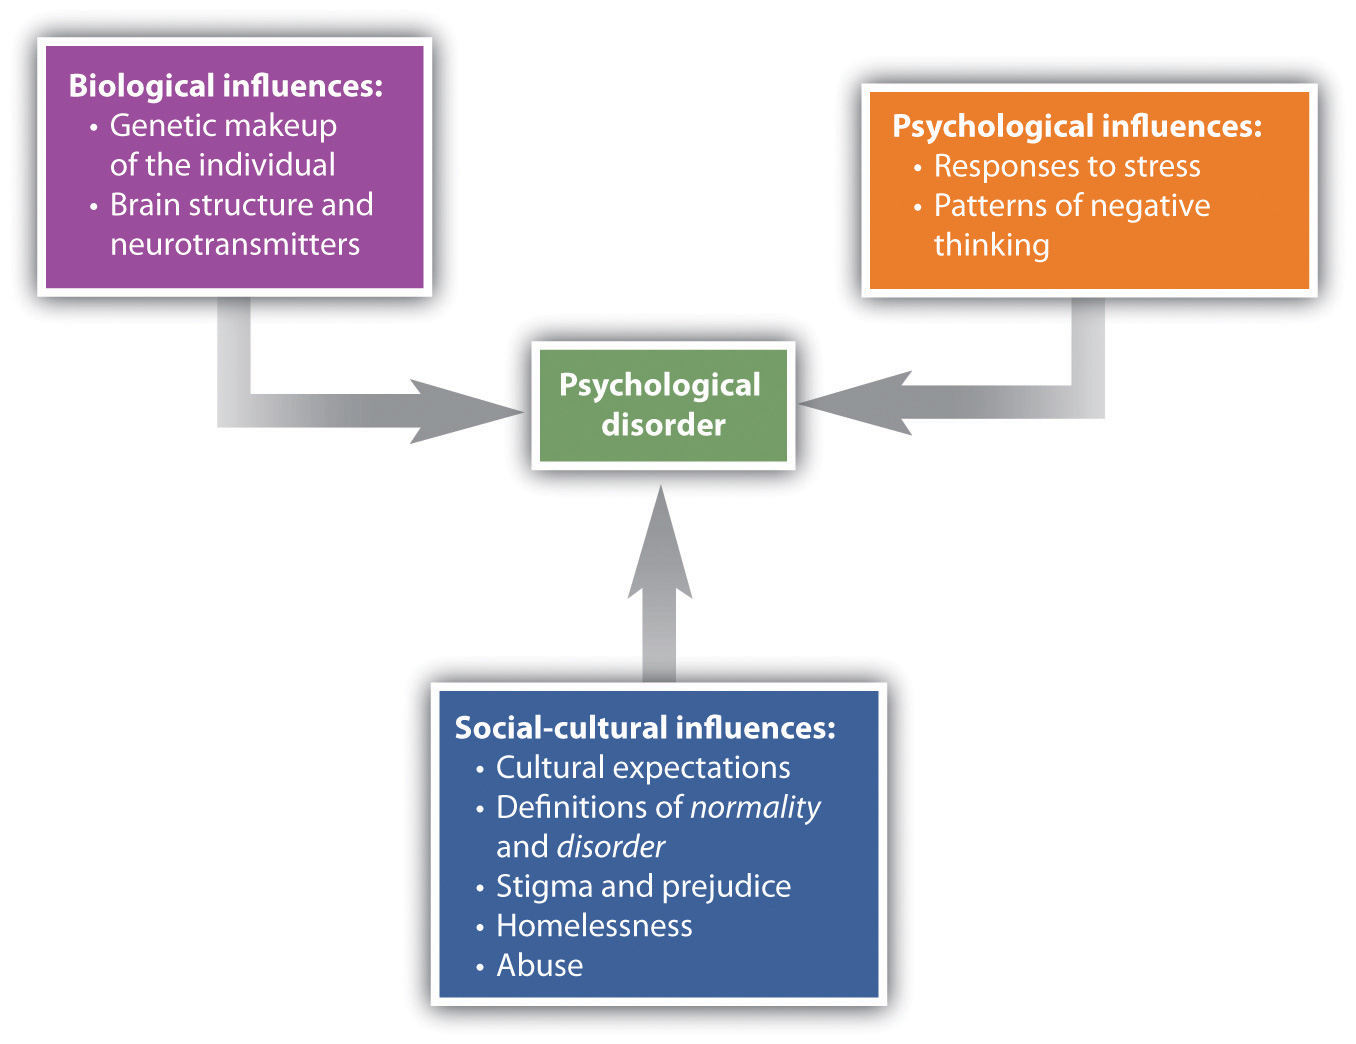 biology and psychology relationship abuse